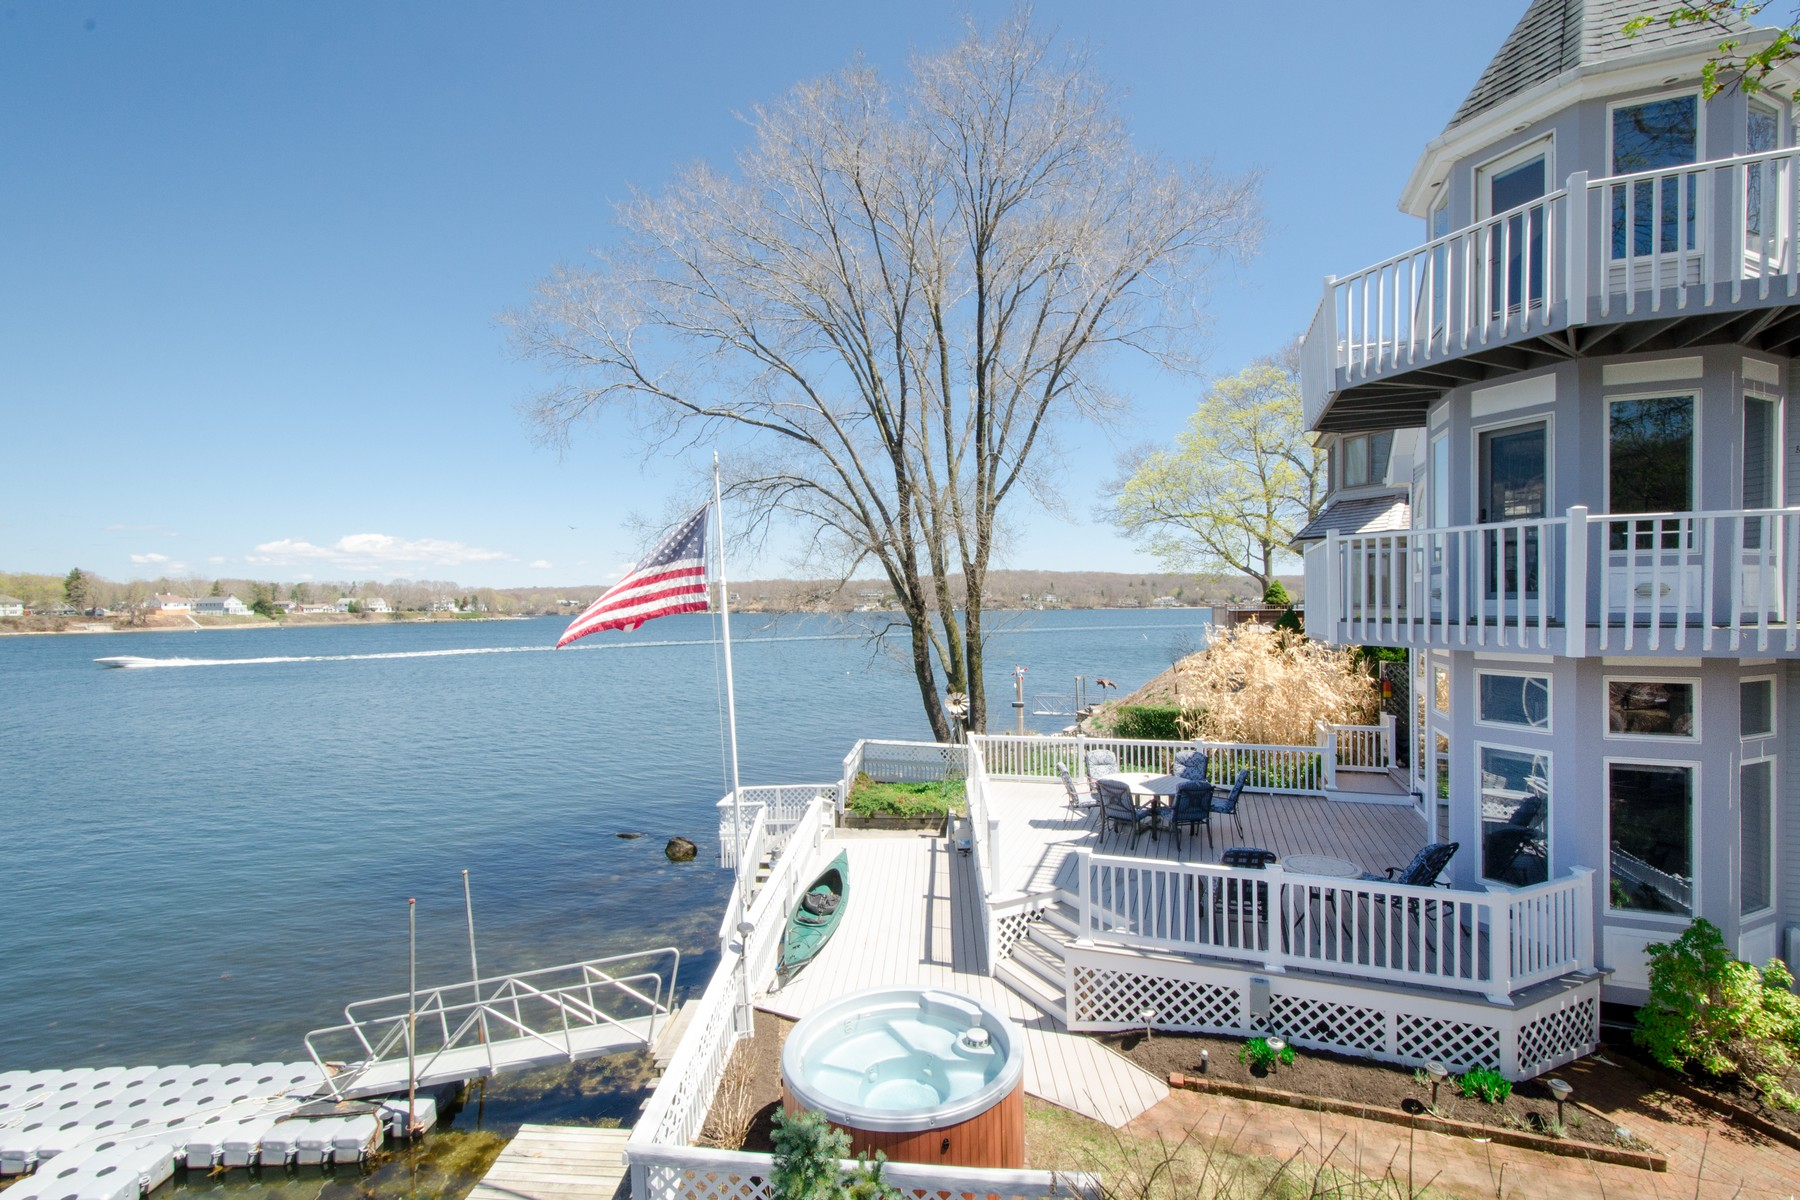 Single Family Home for Sale at A Water Lover's Dream 28 Bishops Bay Road East Lyme, Connecticut, 06357 United States